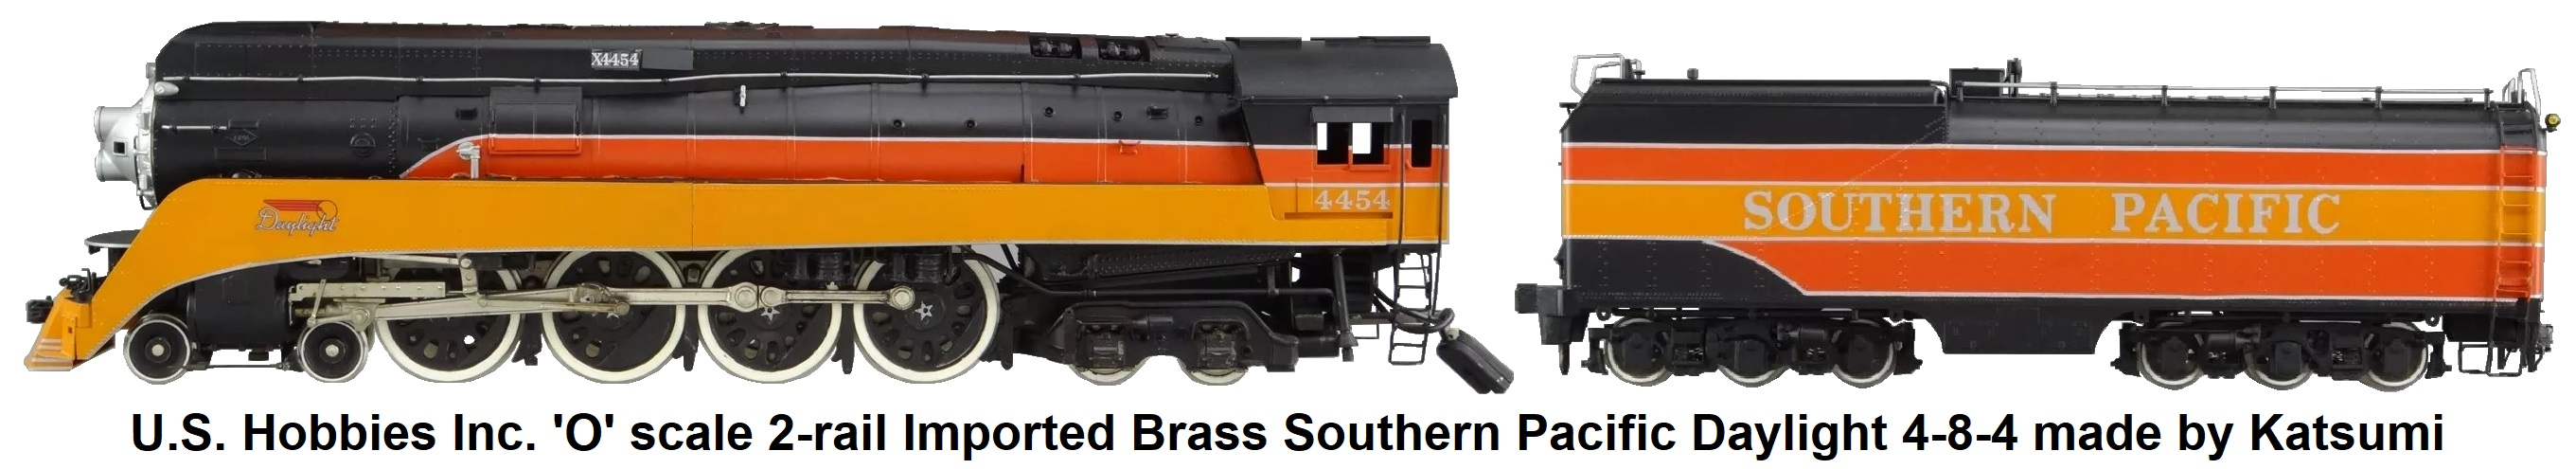 U.S. Hobbies Inc. 'O' scale Brass Import KTM 2-rail Brass Model Train Imported made by Katsumi SP Daylight